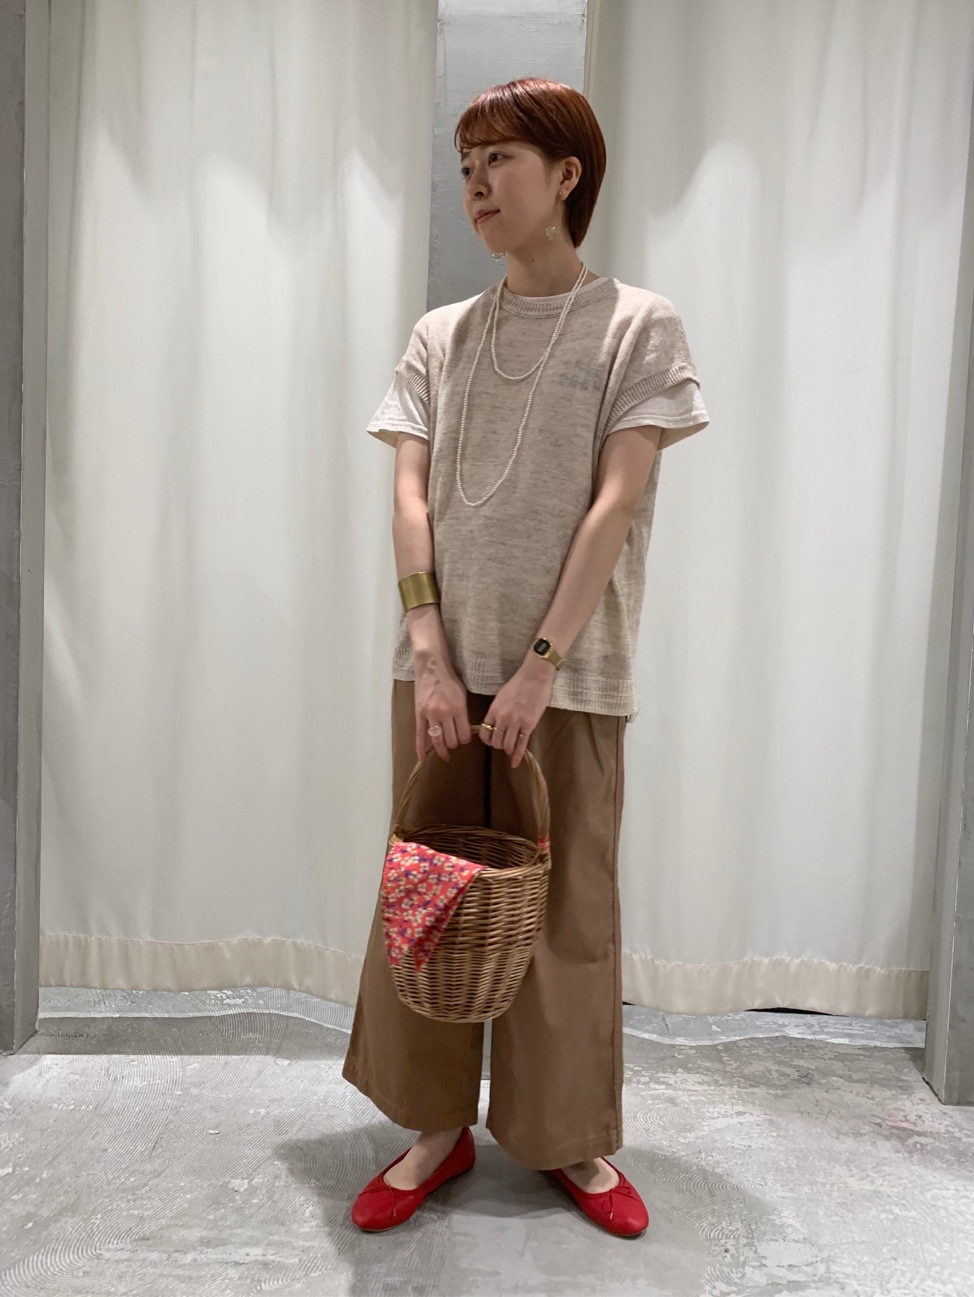 AMB SHOP CHILD WOMAN CHILD WOMAN , PAR ICI ルミネ横浜 身長:158cm 2020.06.15